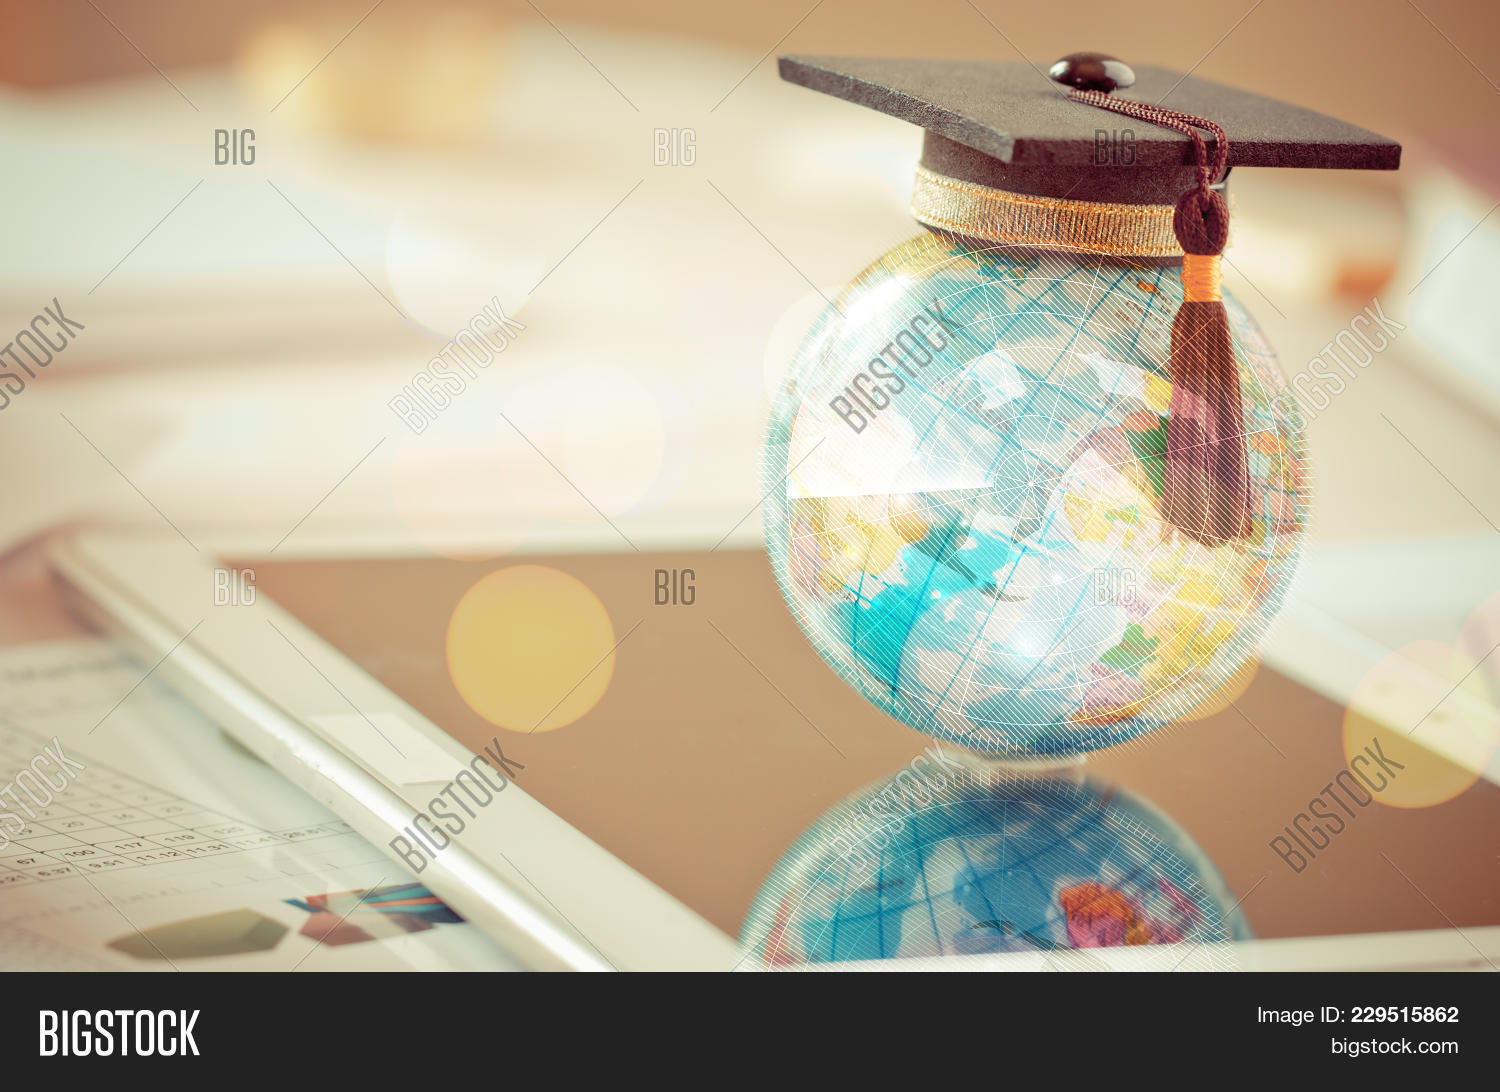 academic,assessment,assignment,award,back,best,business,celebration,ceremony,certificate,challenge,champion,class,college,companion,degree,diploma,earth,education,evaluation,exam,examination,globalization,grade,graduation,hat,international,knowledge,language,learn,medal,medallion,mortarboard,philosophy,planet,quiz,radar,recognition,school,student,study,studying,success,teacher,technology,university,vintage,win,winner